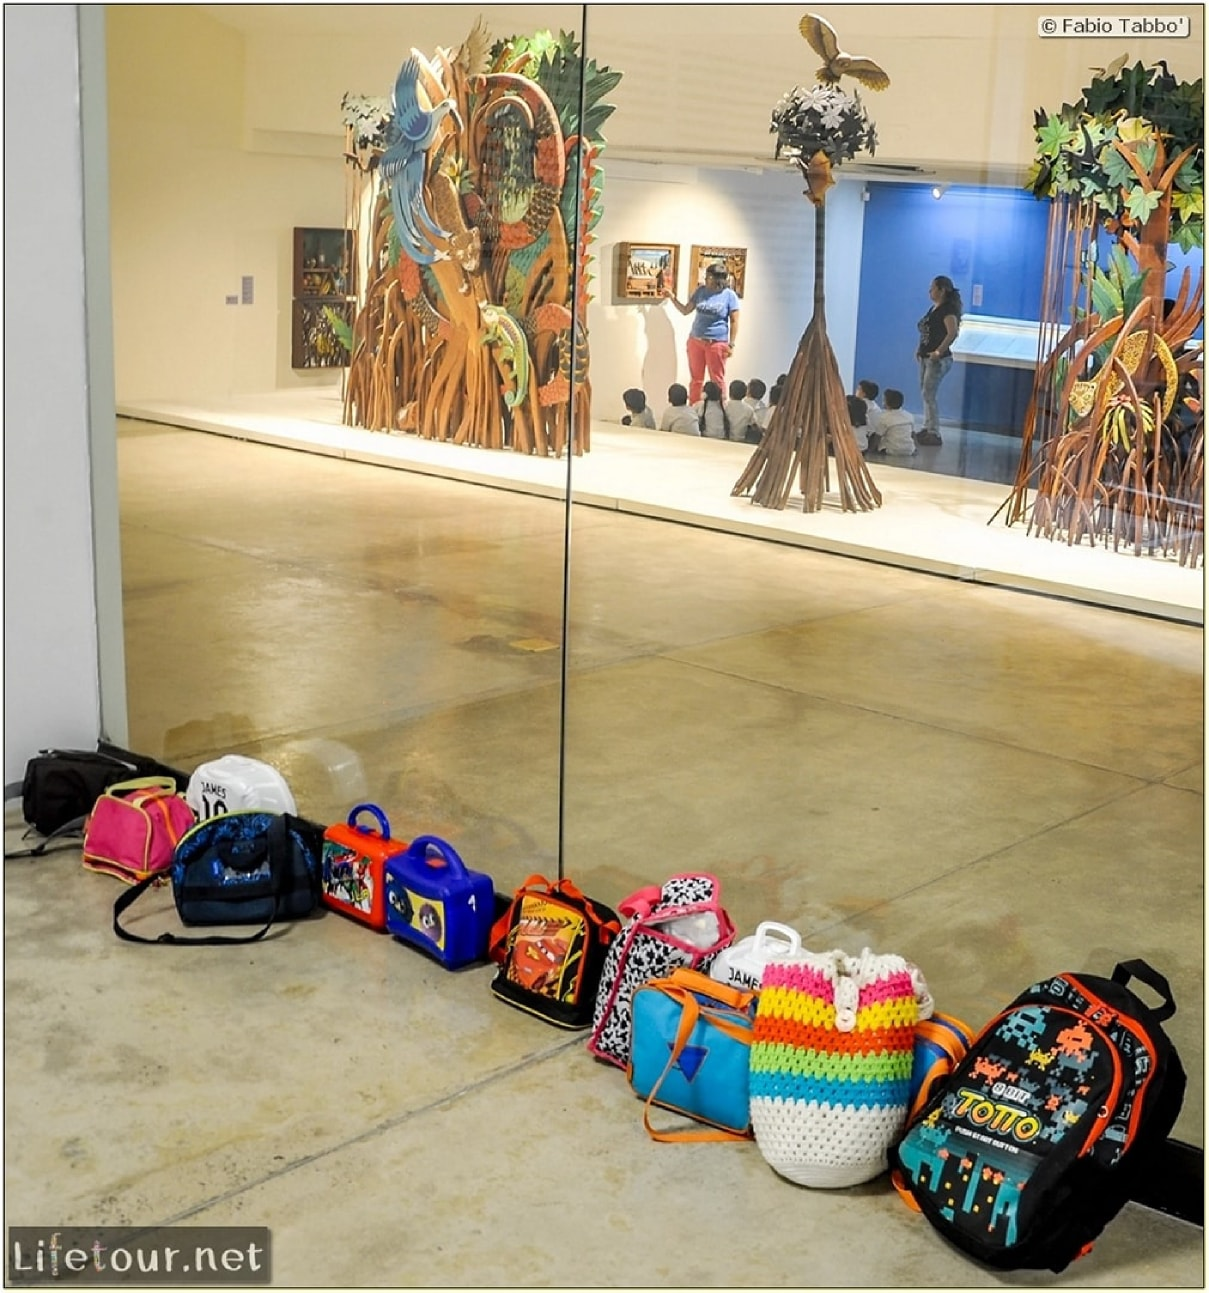 Fabio_s-LifeTour-Colombia-2015-January-February-Cali-Museo-La-Tertulia-438